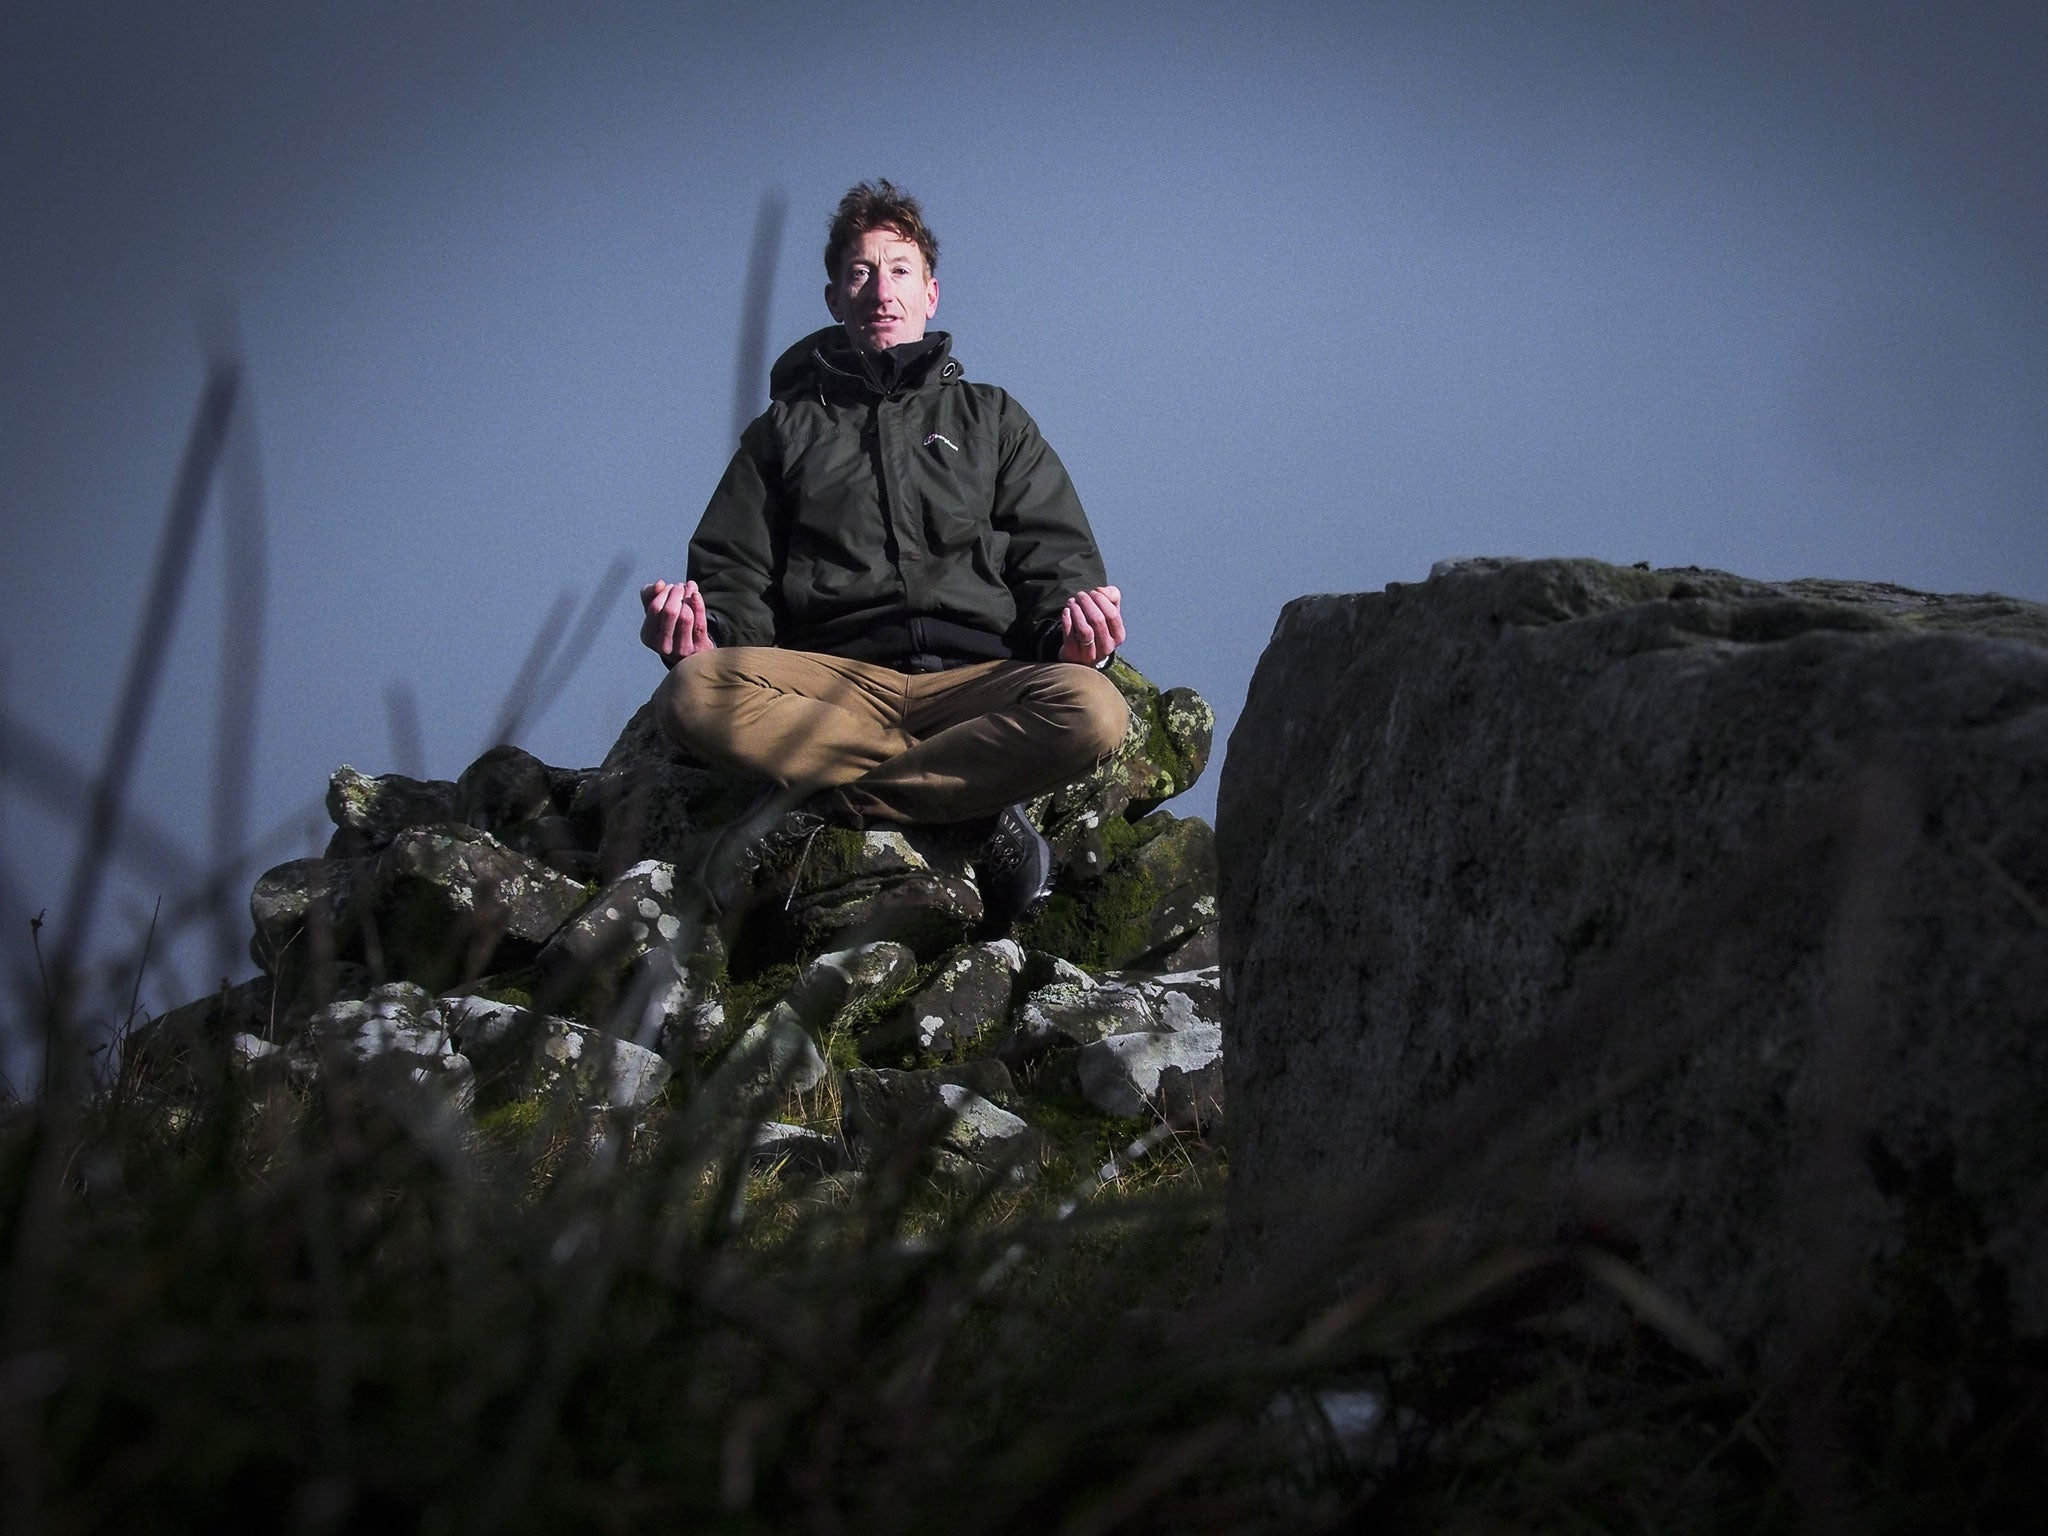 Kielder Mires: If I can't relax here... a journey to England's quietest spot